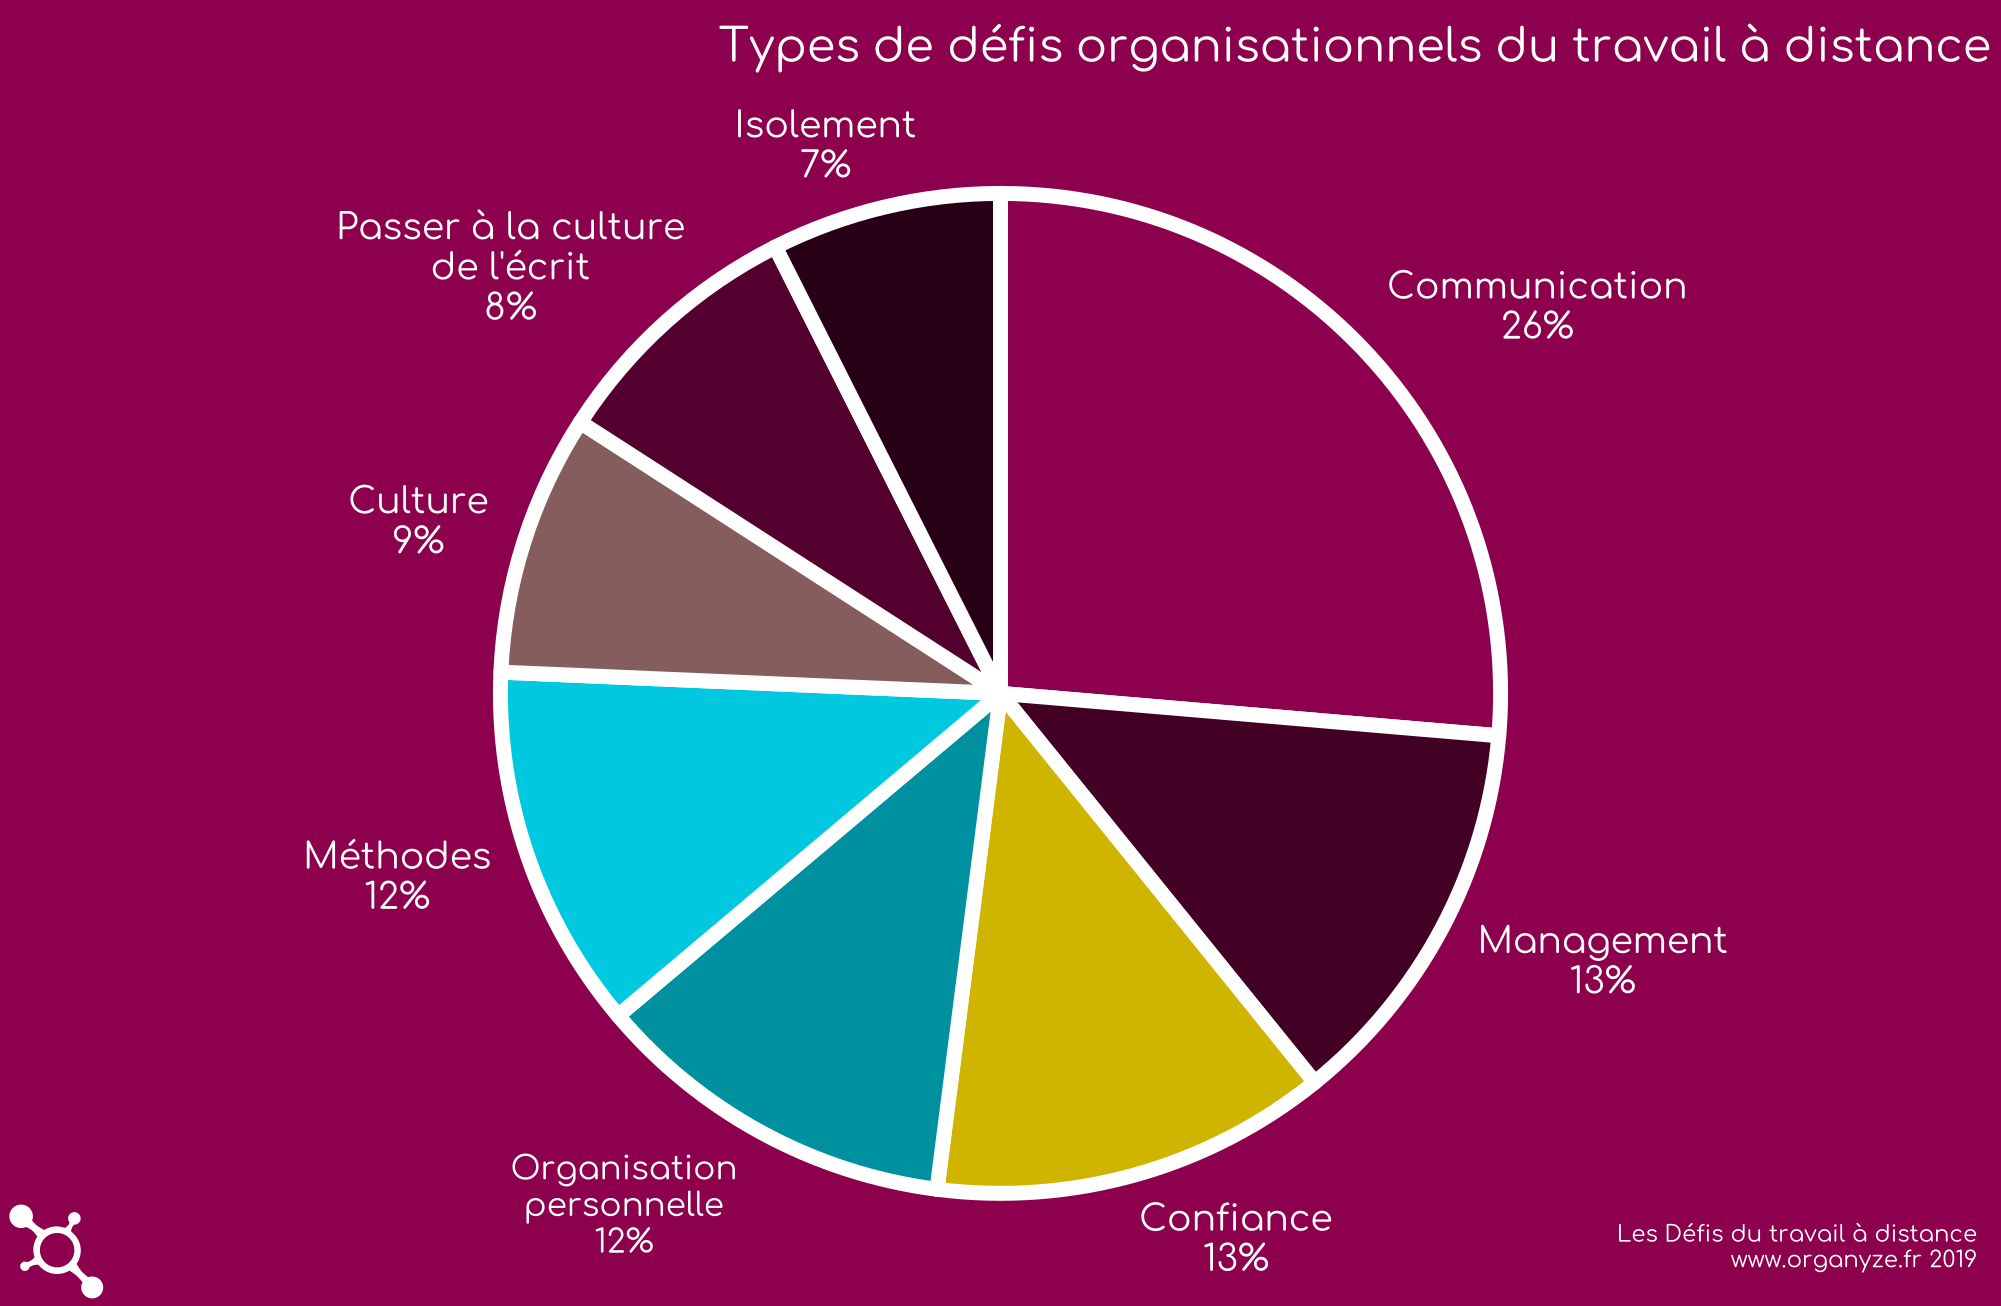 Communication, Management, Confiance, Organisation personnelle, Méthodes, Culture, Passage à la culture de l'écrit et Isolement